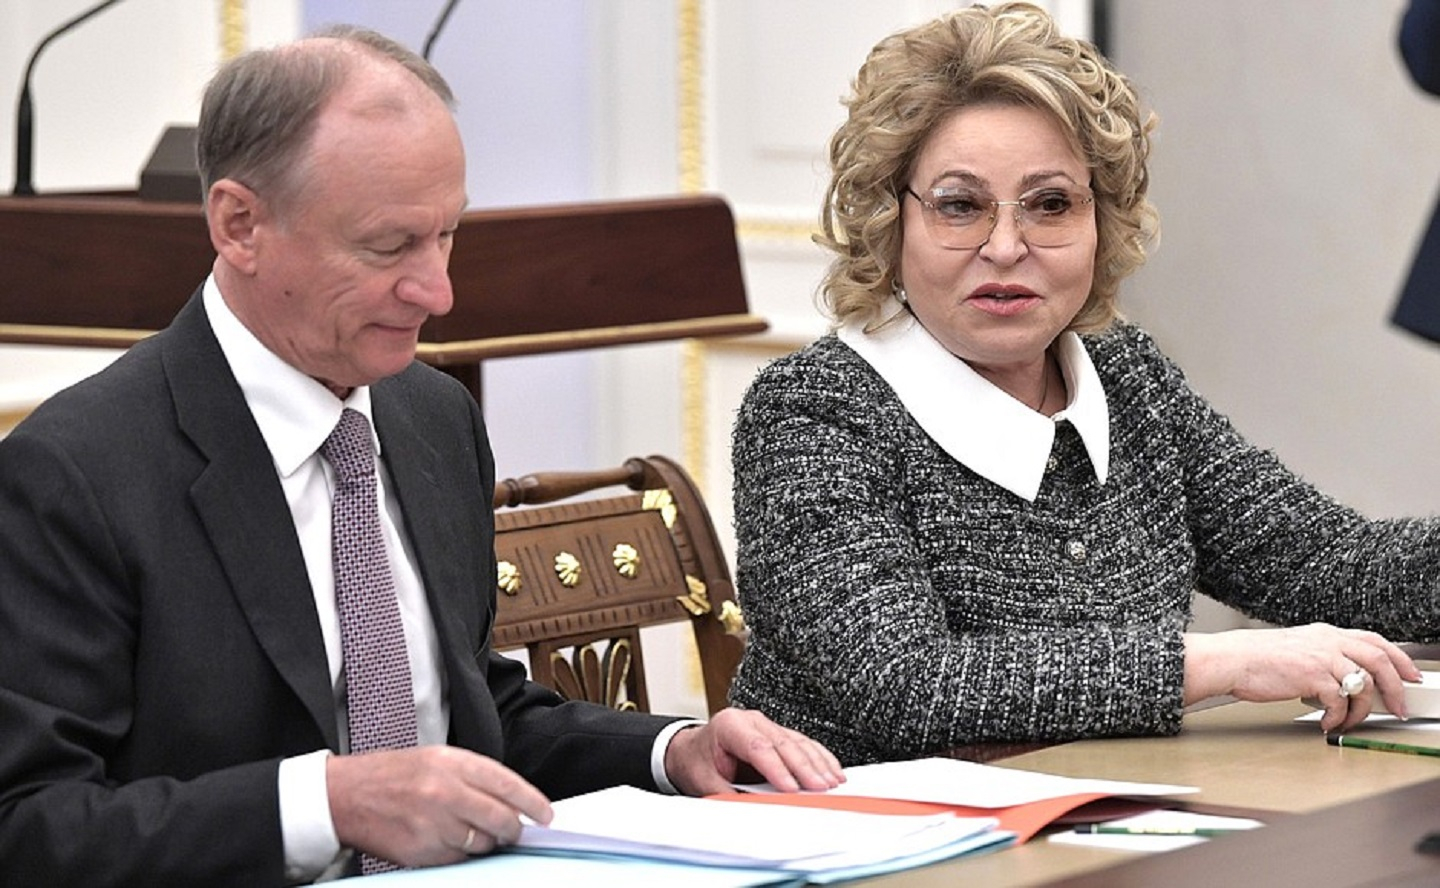 Expanded meeting of the Security Council, April 16, 2019 Security Council Secretary Nikolai Patrushev and Federation Council Speaker Valentina Matviyenko before the expanded meeting of the Security Council.